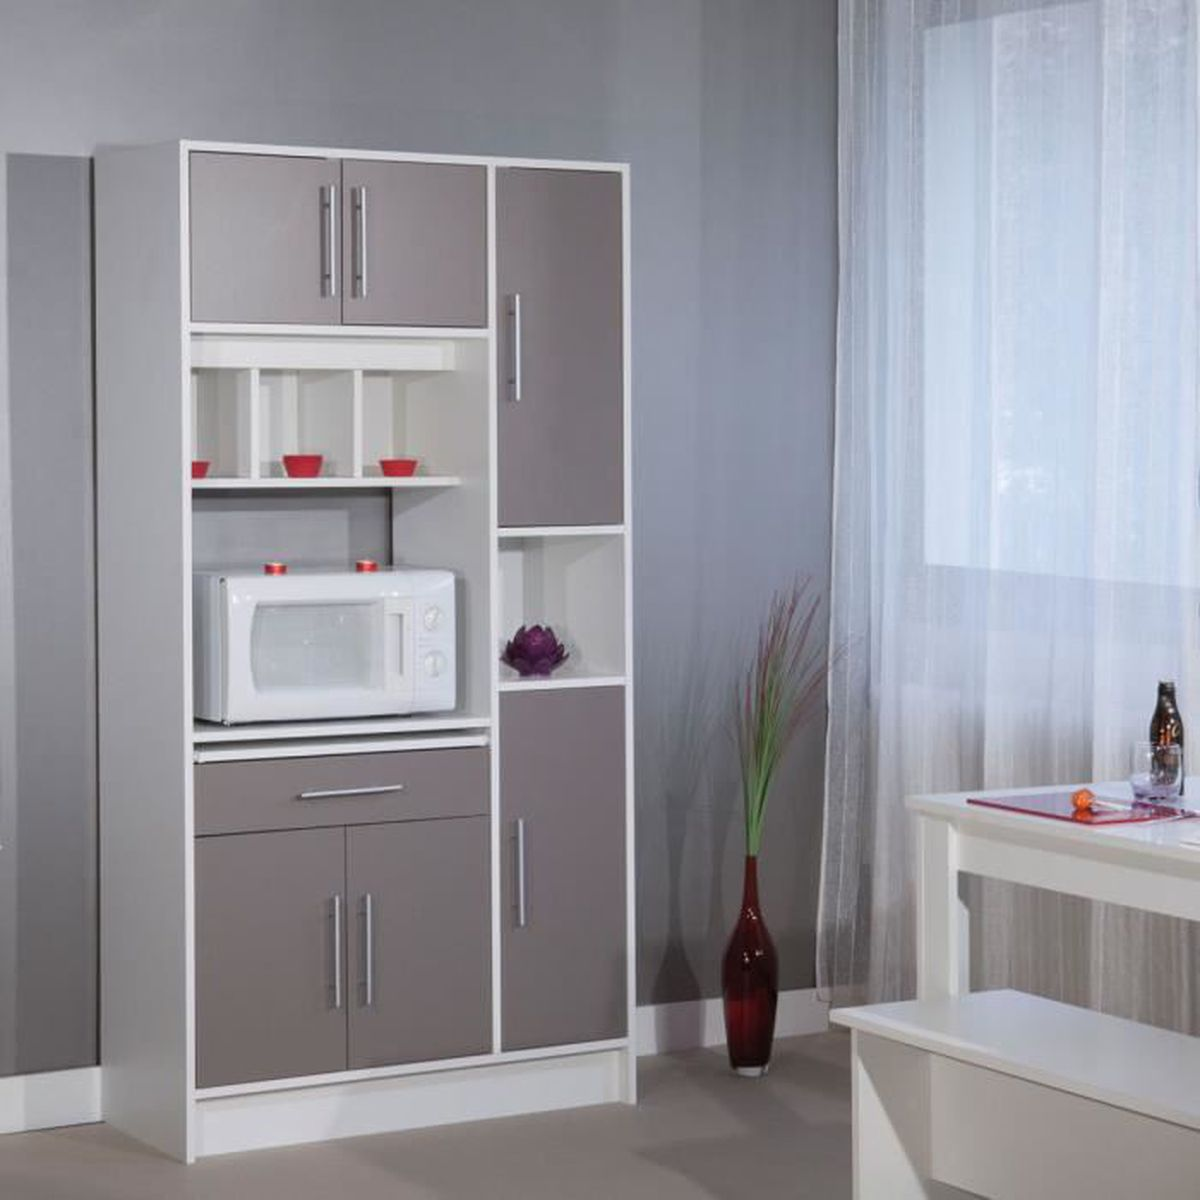 buffet micro ondes 6 portes 1 tiroir 4 niches taupe blanc taupe blanc achat vente buffet. Black Bedroom Furniture Sets. Home Design Ideas